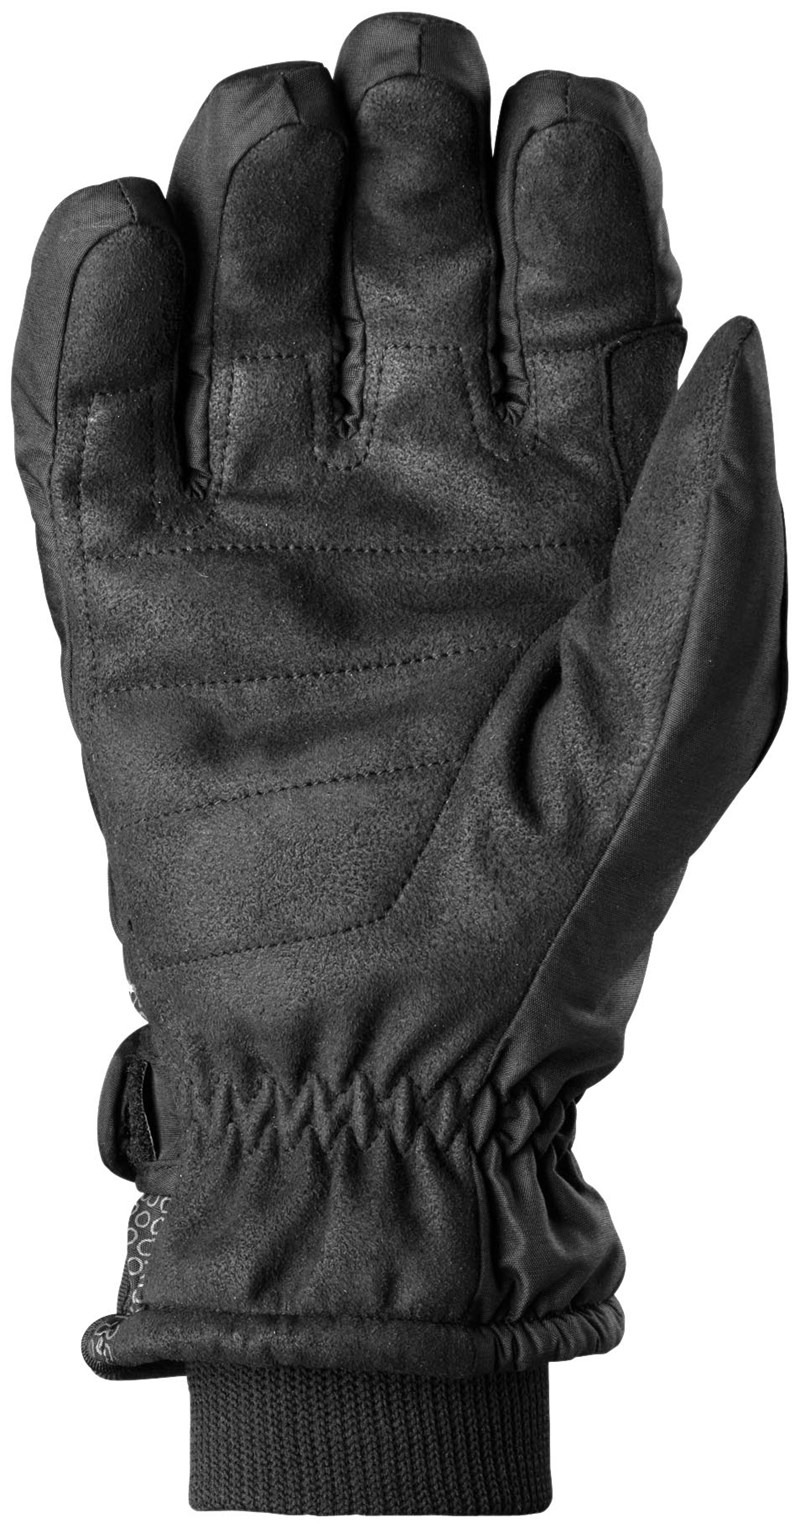 Jrc motorcycle gloves - Thinsulate Motorcycle Gloves